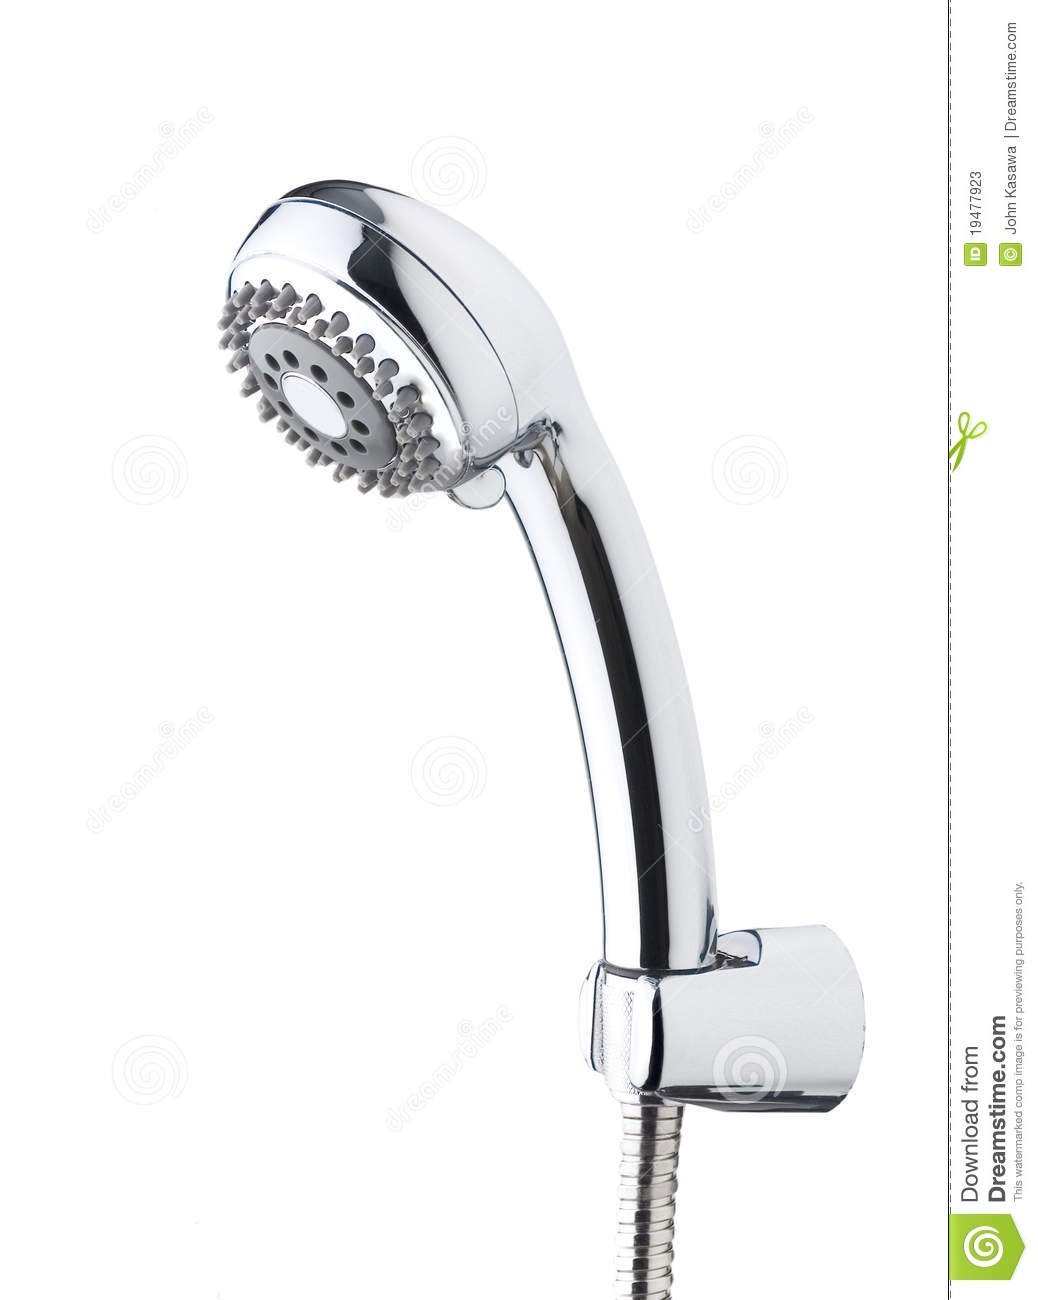 Chrome Shower Head Isolated On White Stock Image - Image of droplets ... for shower head clipart black and white  45gtk